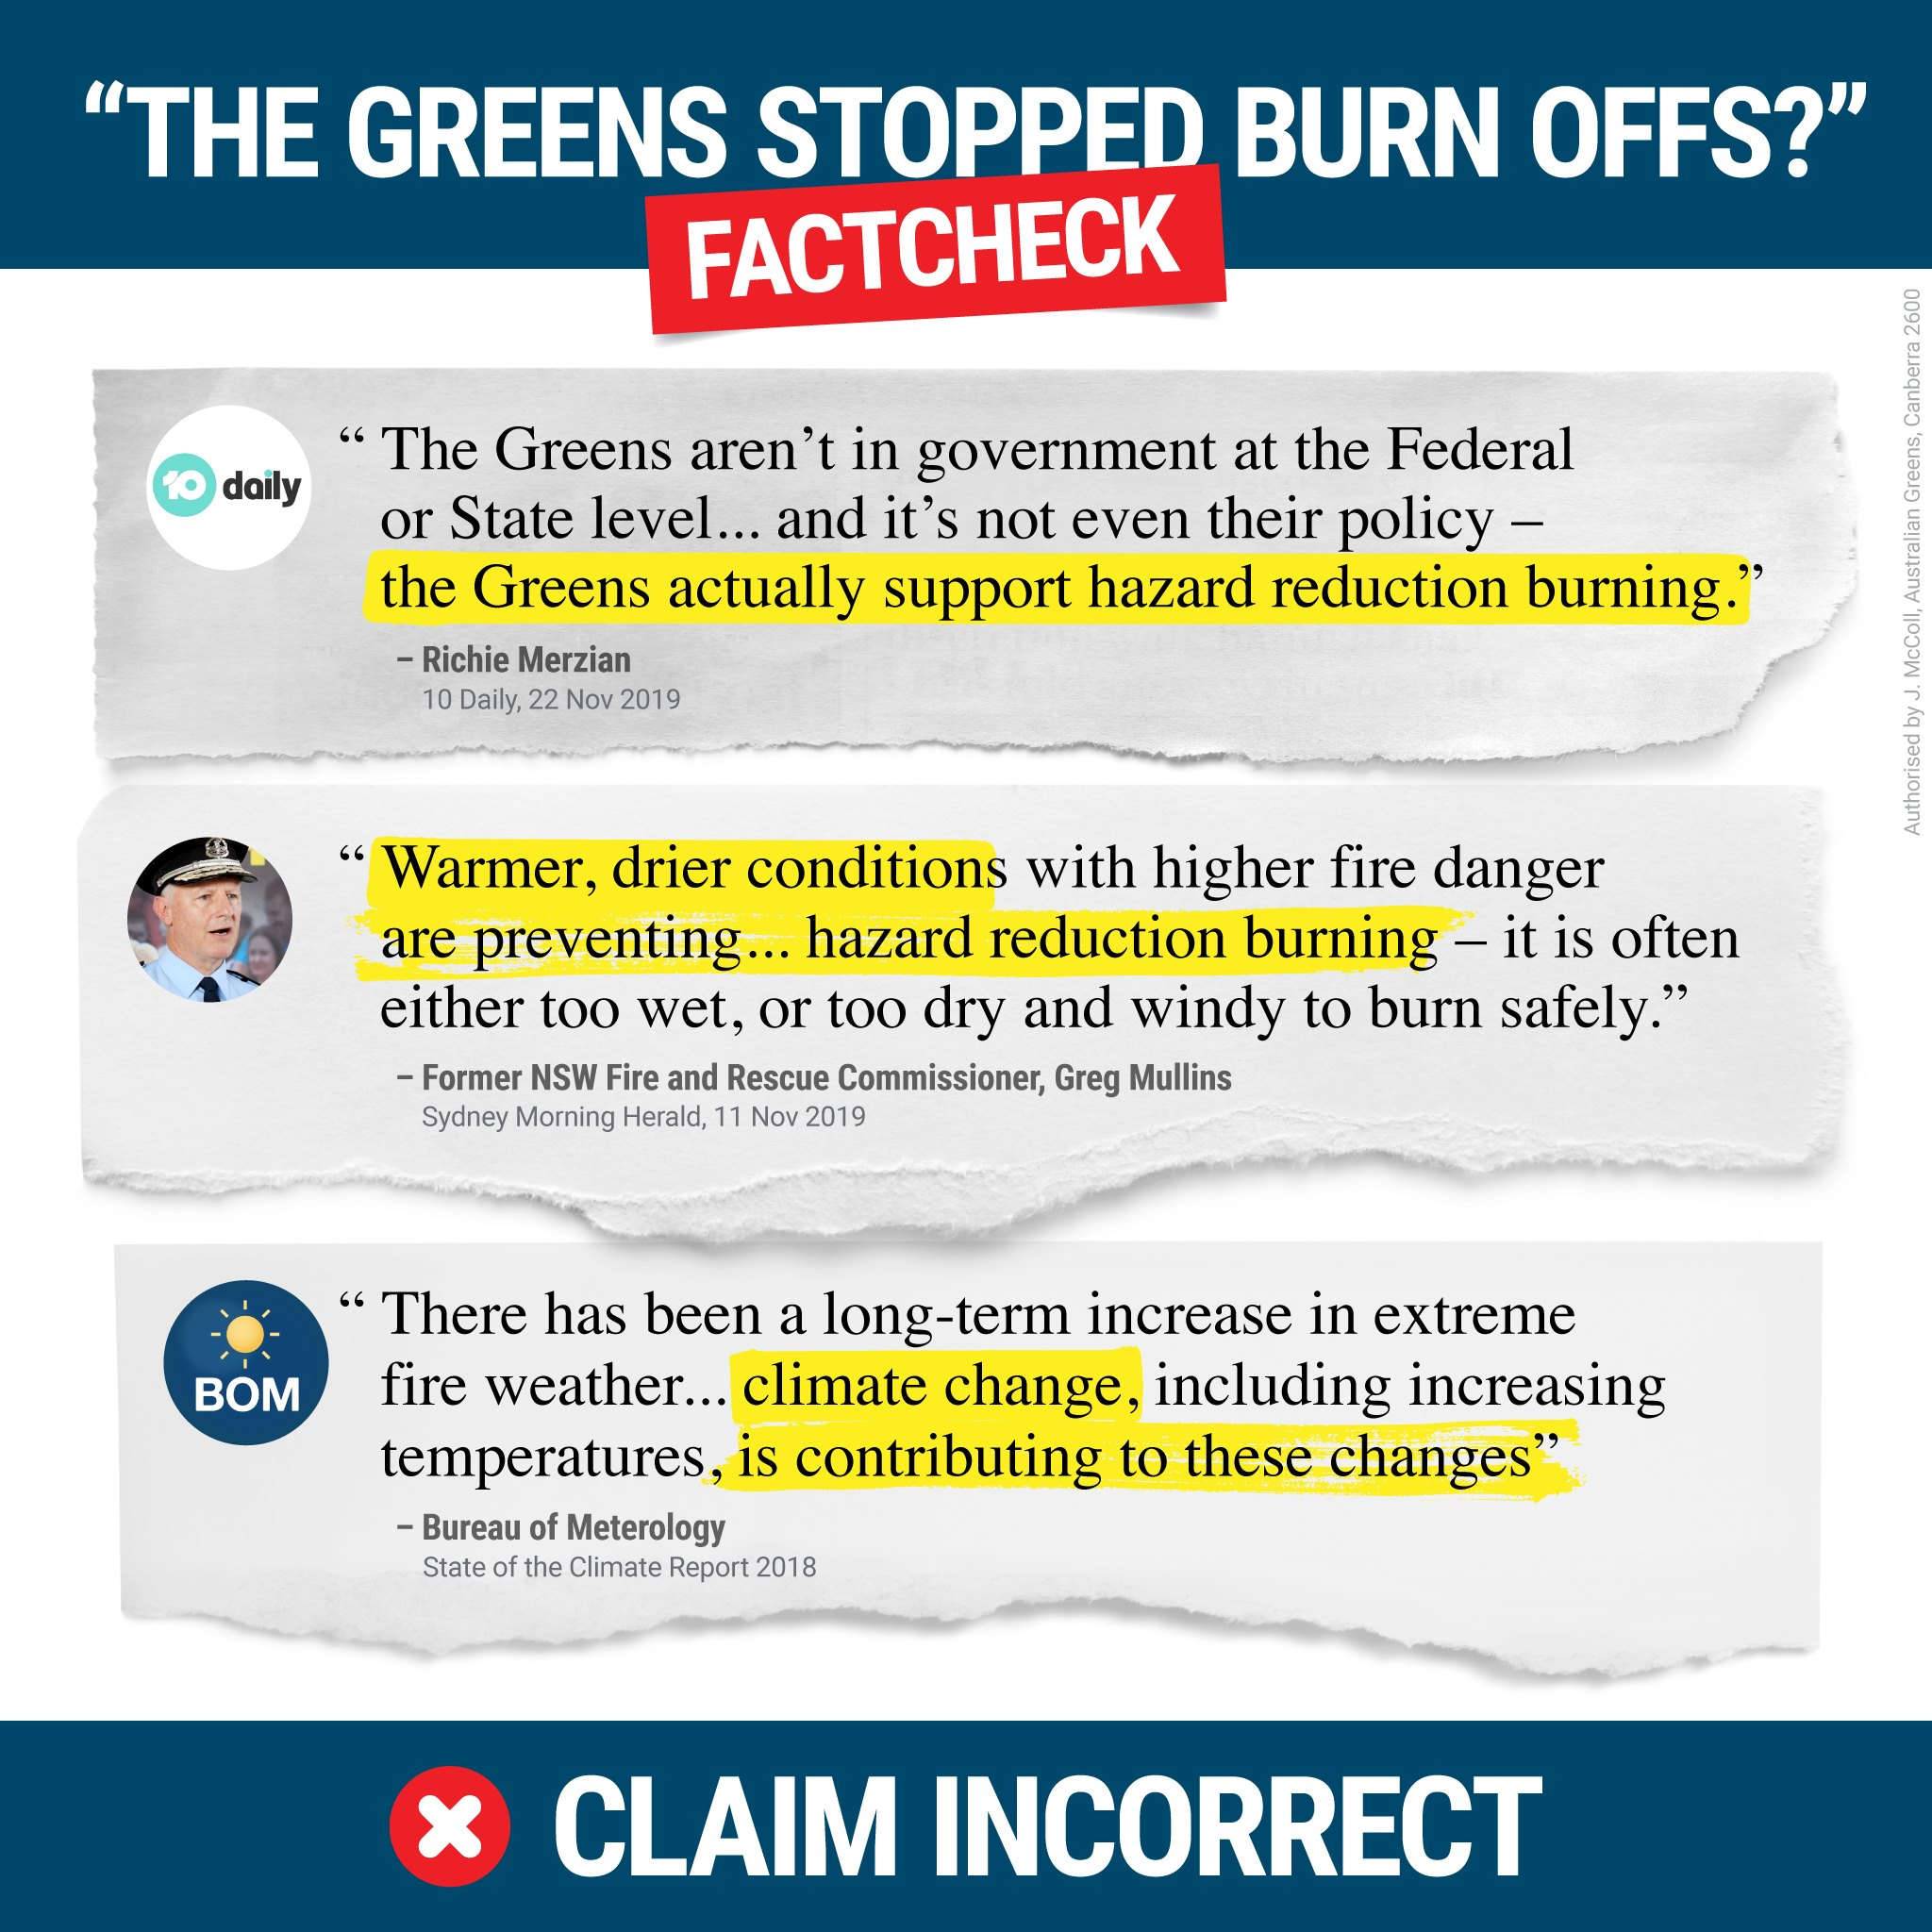 Fact check - the Greens do support hazard reduction burns